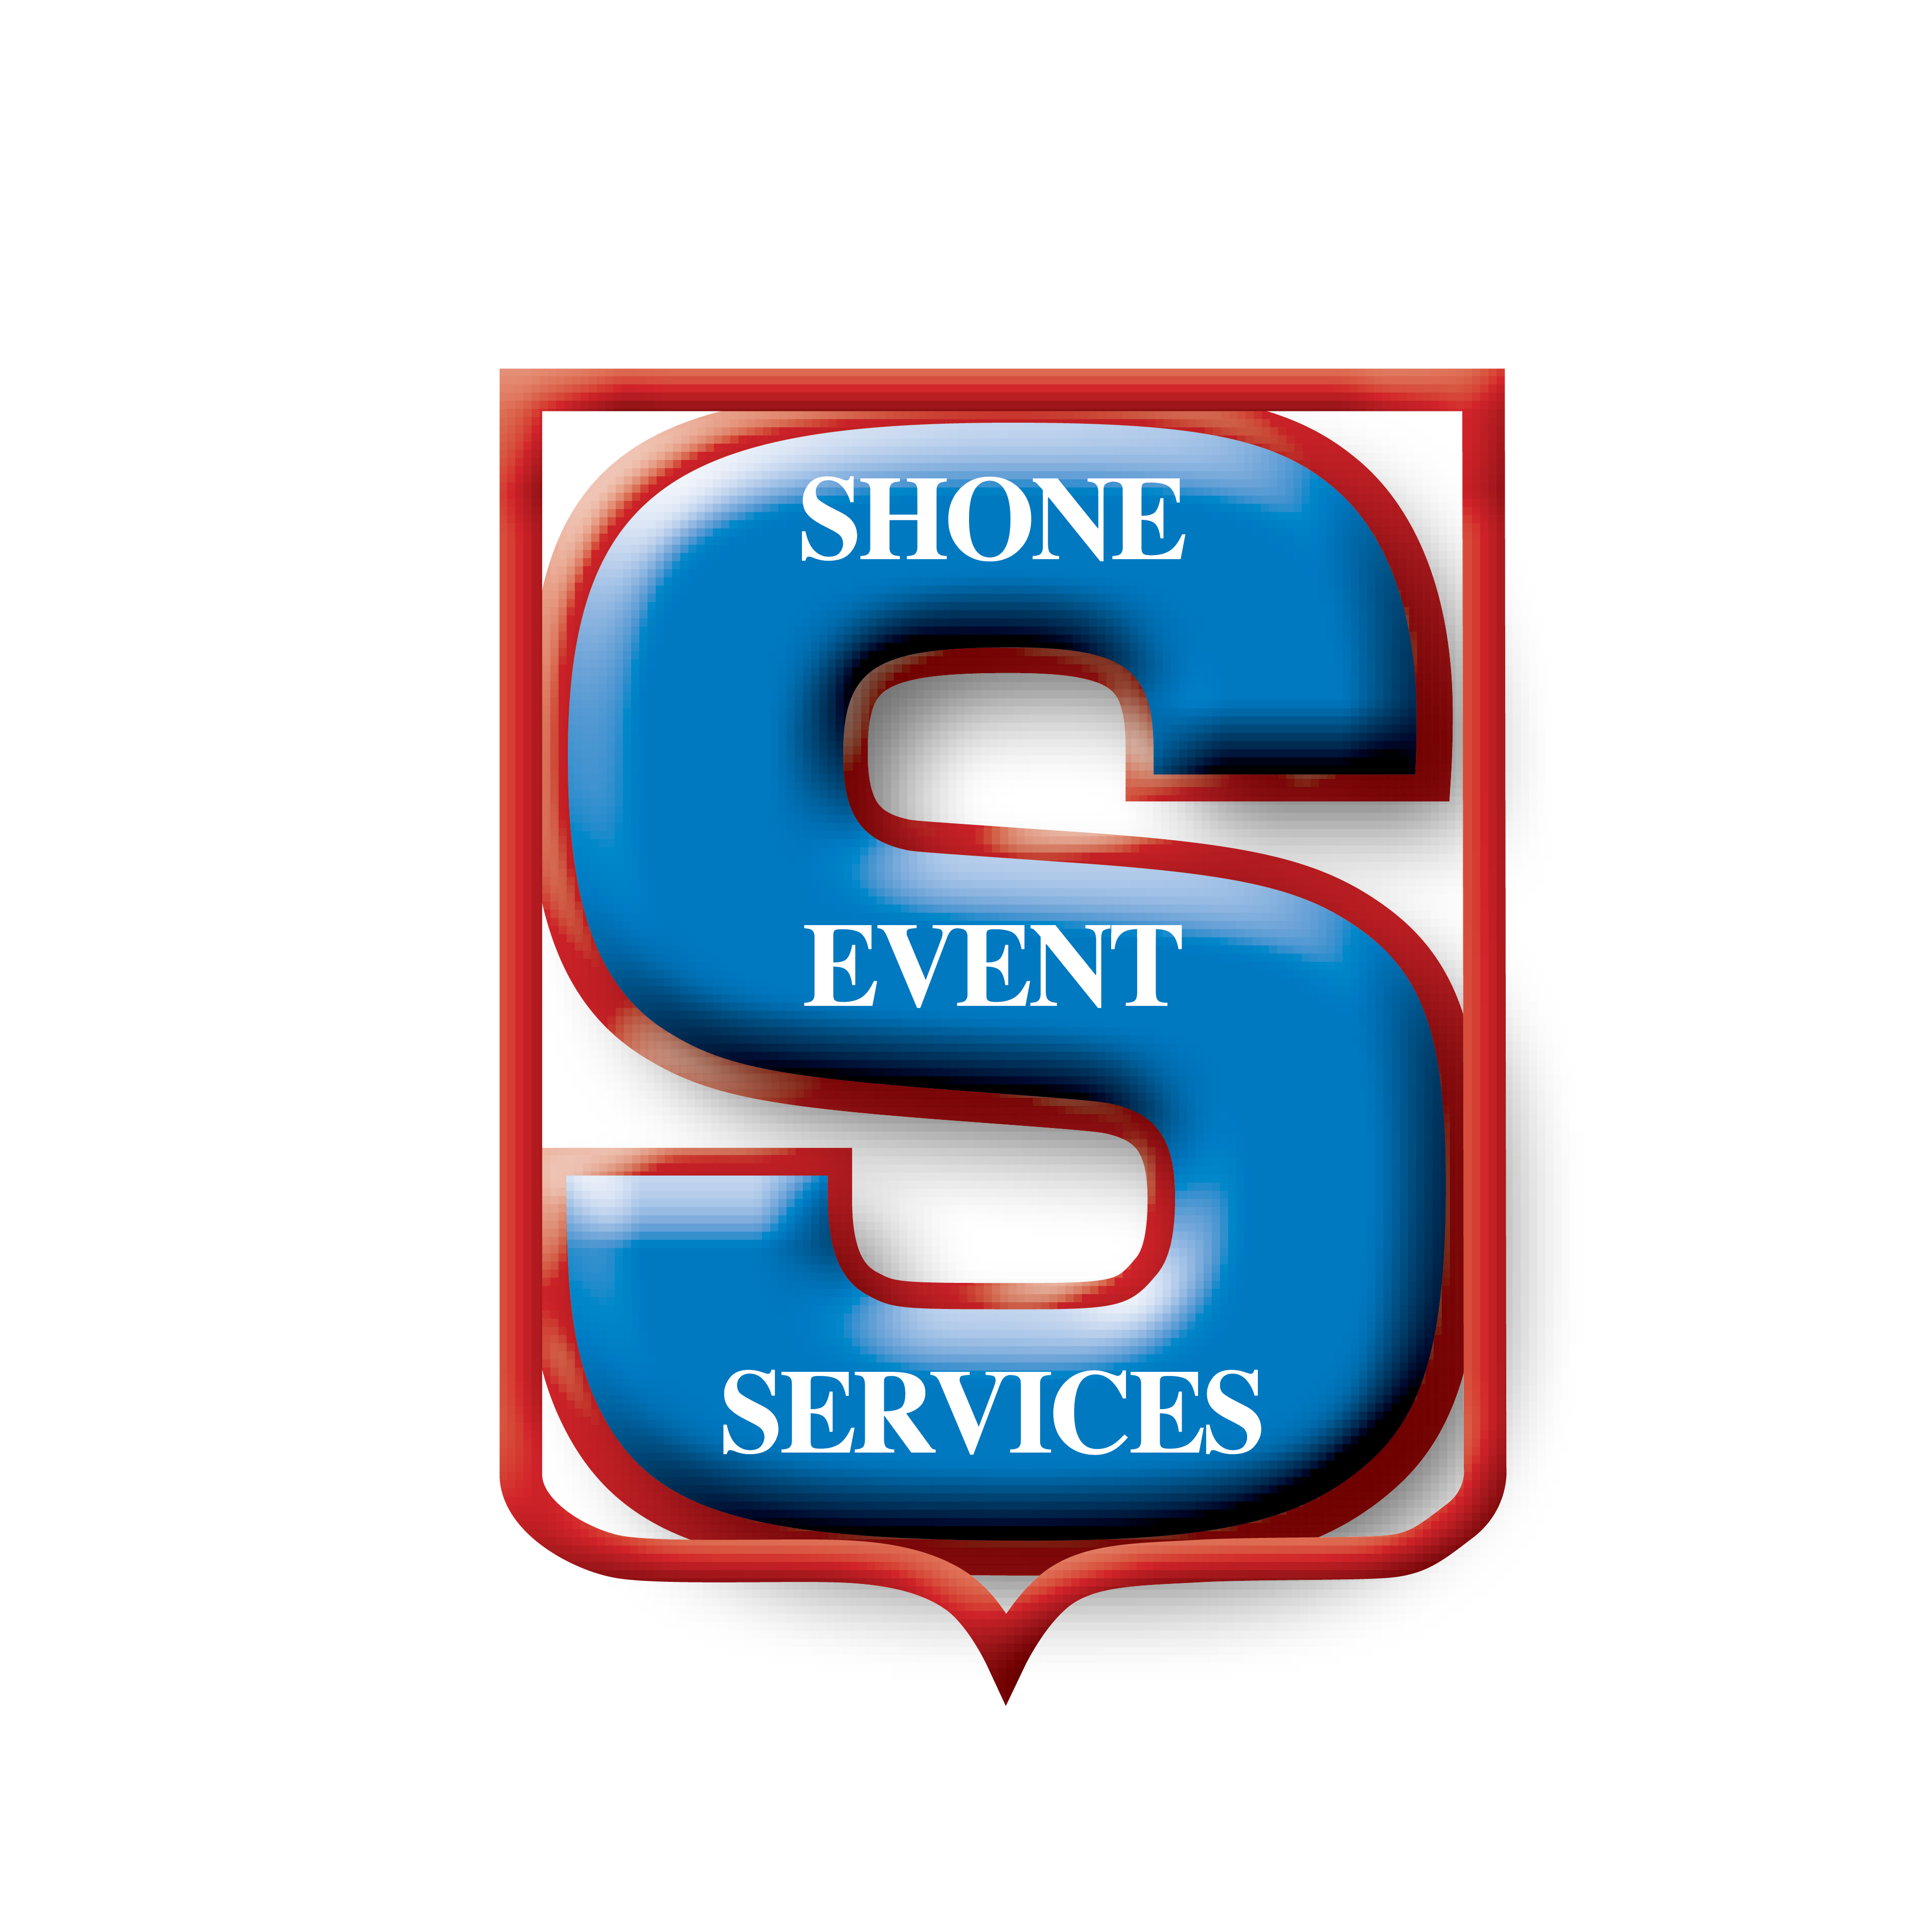 Contact Security: Shone Event Service In Adelaide